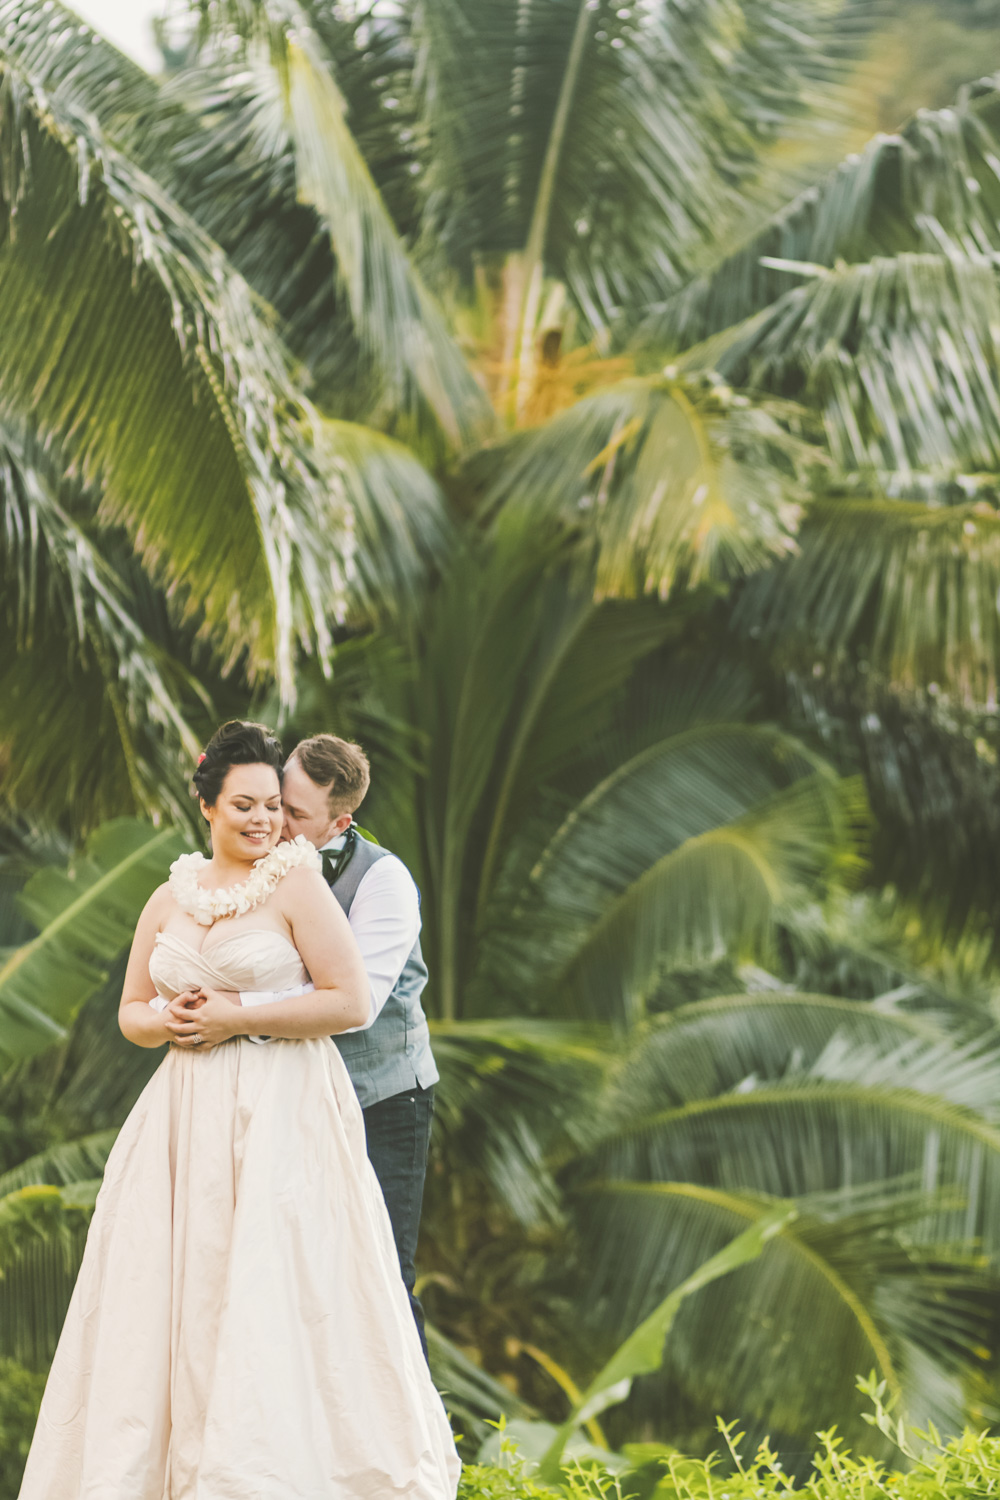 Maui hawaii photographer wedding inspiration_38.jpg